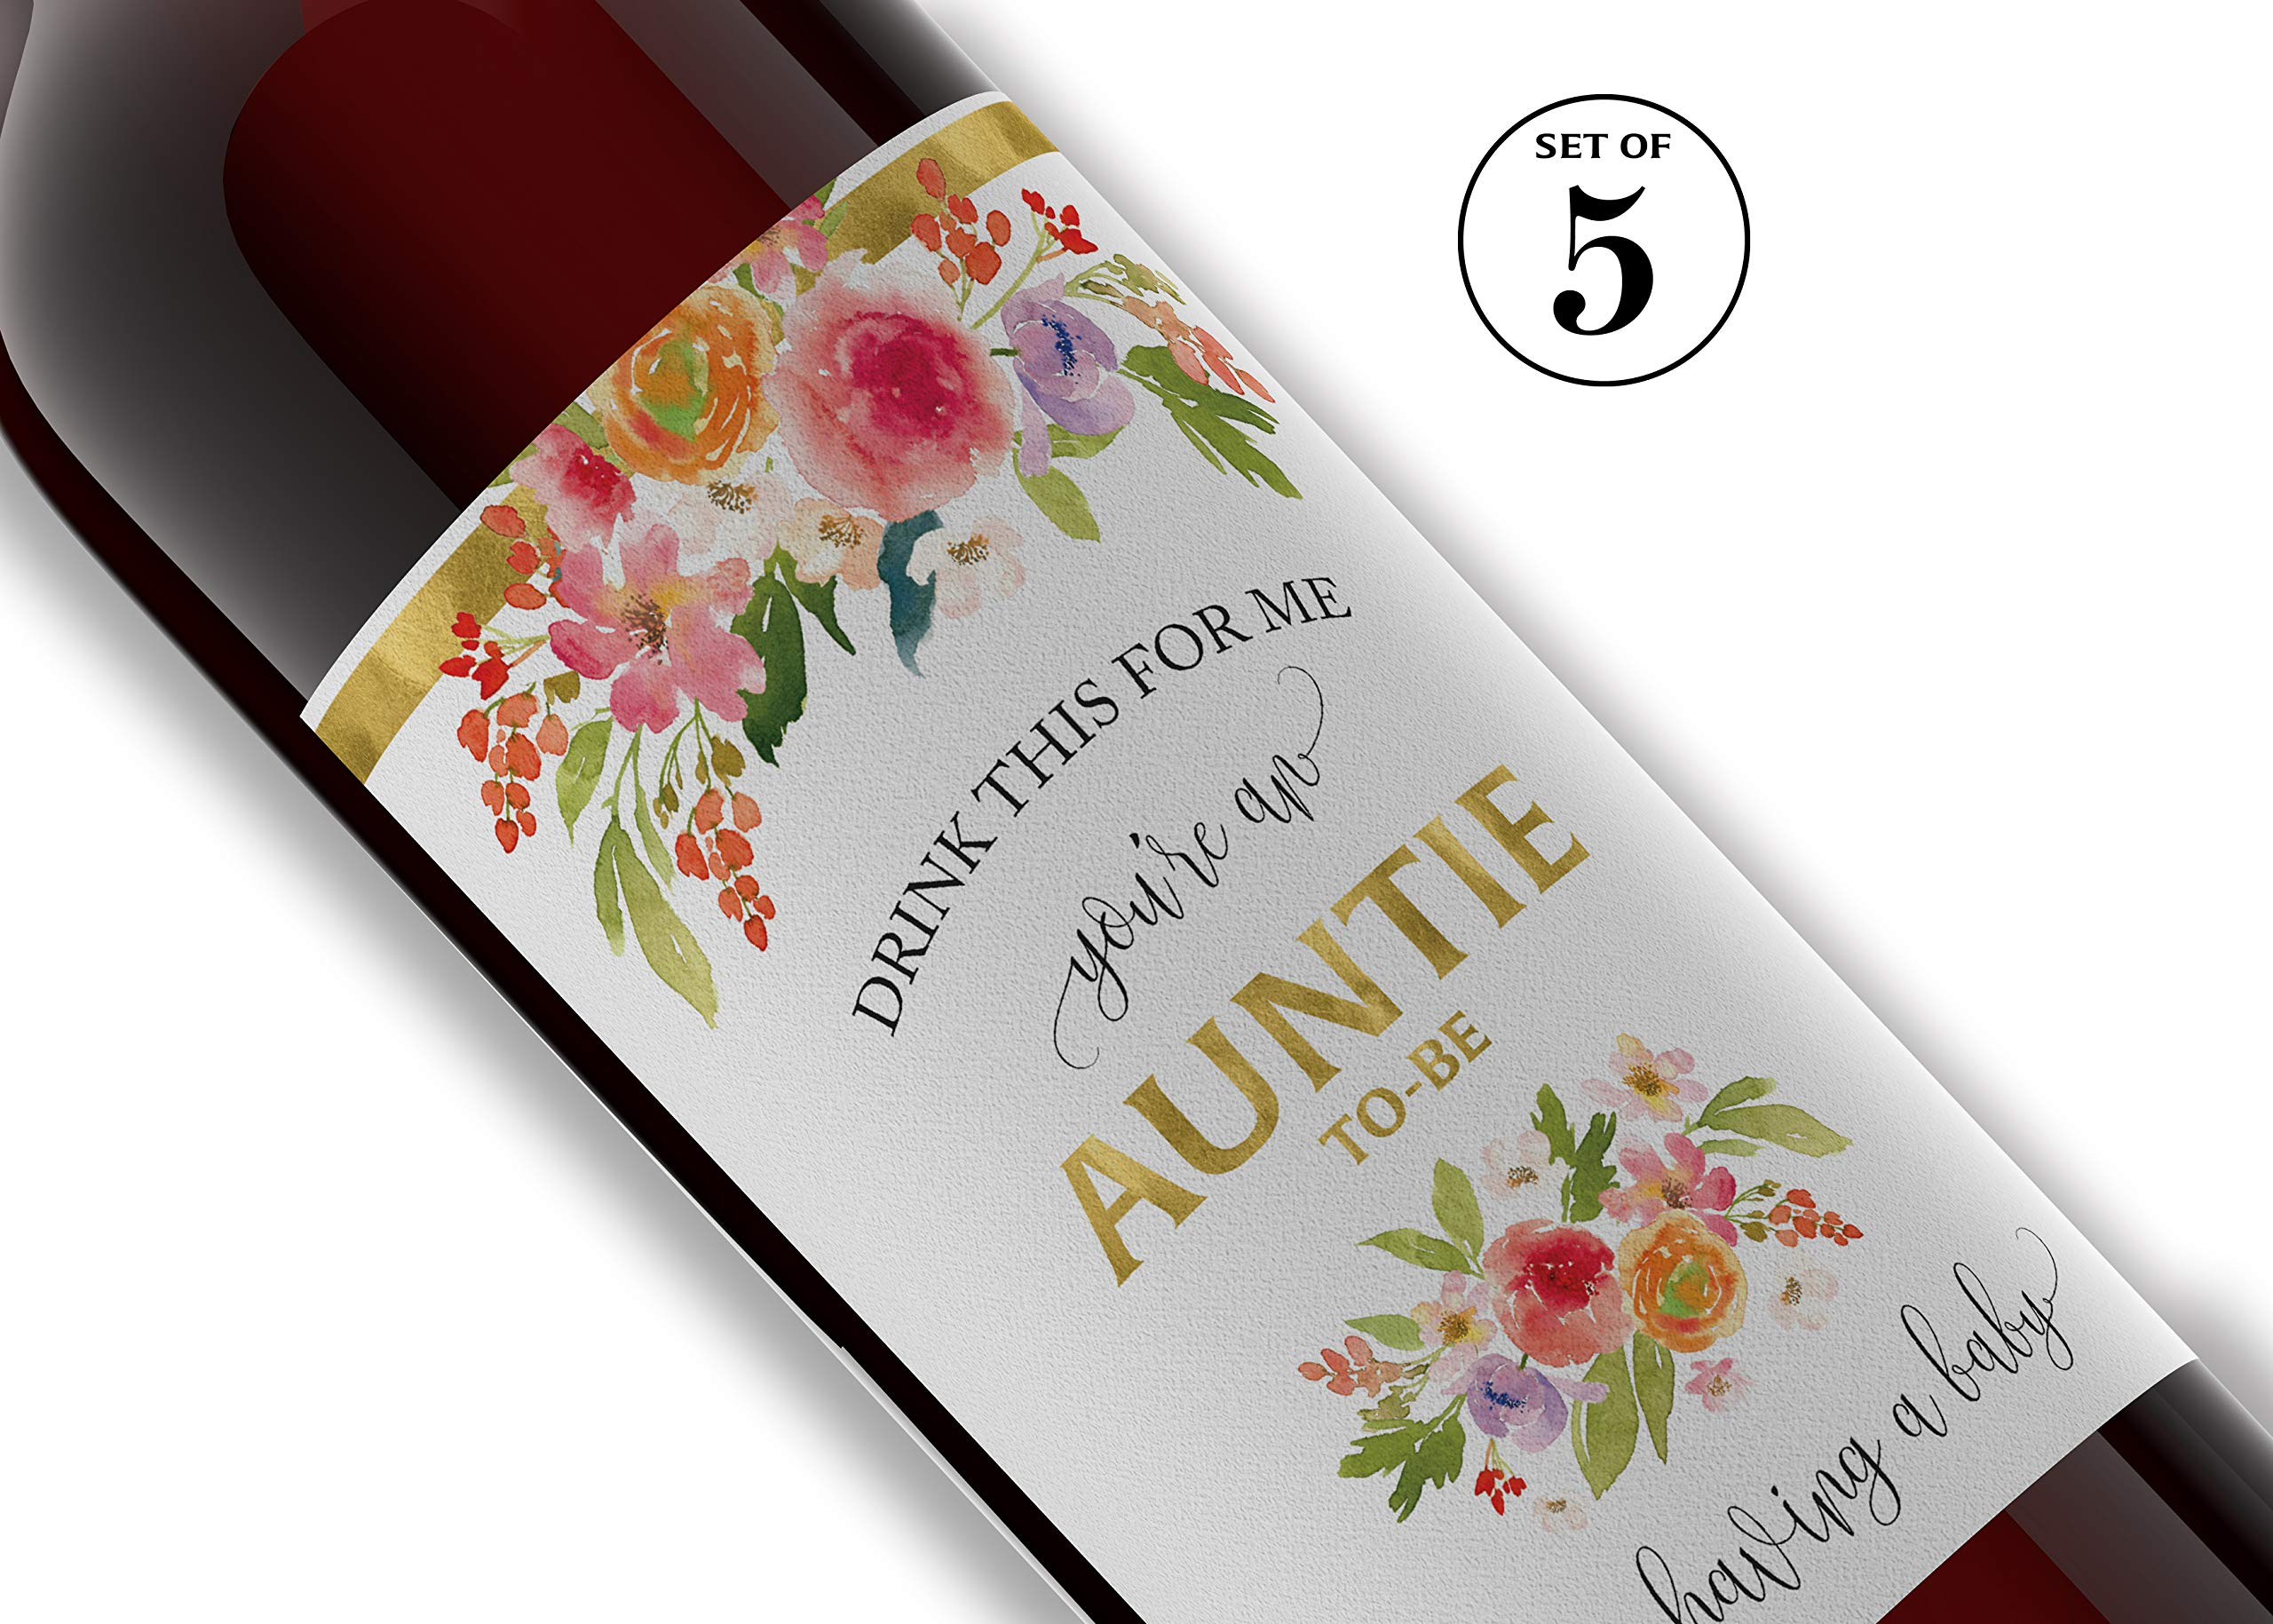 Drink This For Me - You're An Auntie-To-Be ● SET of 5 ● Pregnancy Announcement Wine Labels, Pregnancy Reveal Wine, Alternative to Baby Announcement Card, WEATHERPROOF, We're Pregnant, Black, 905G-5A1